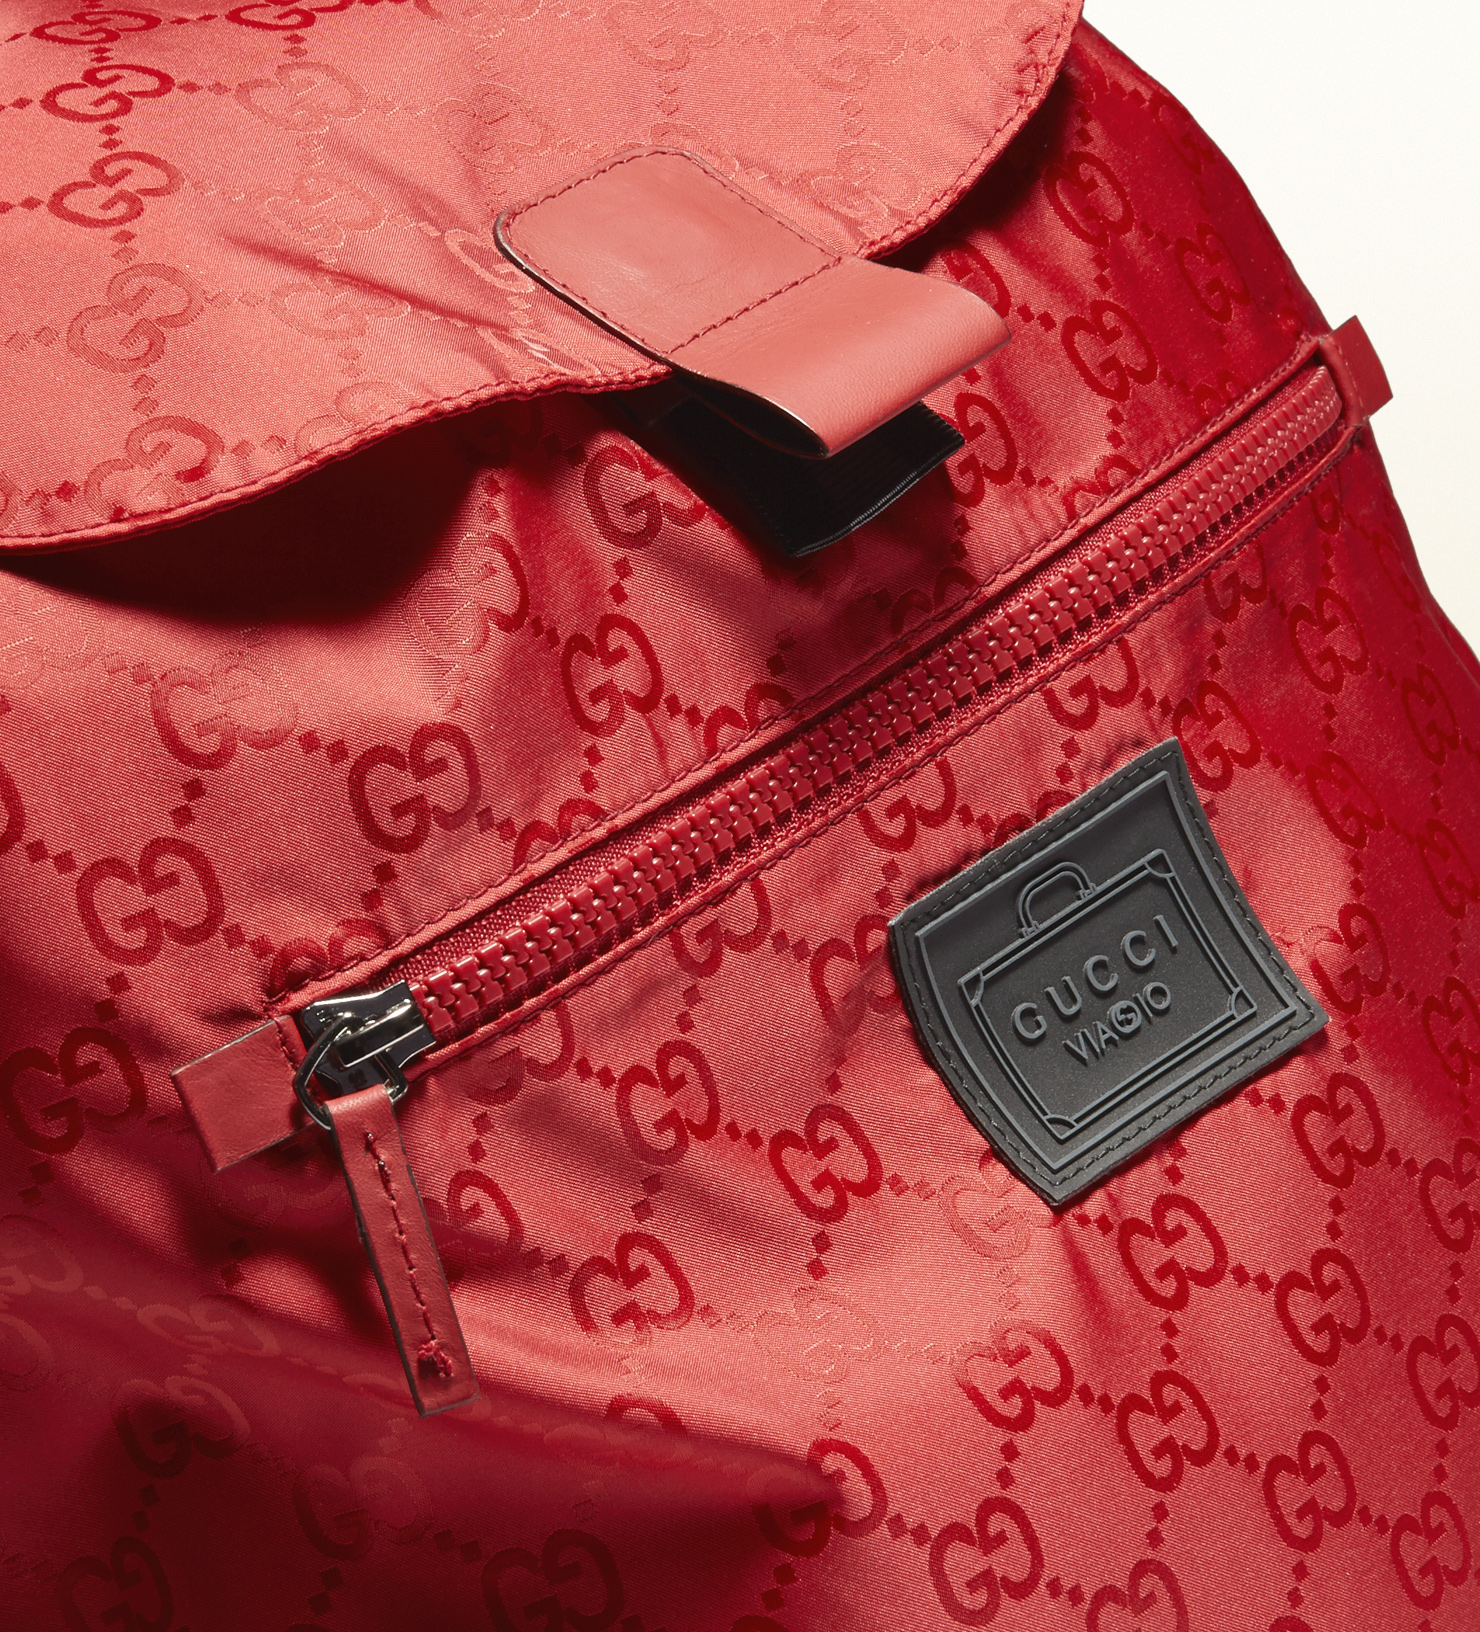 Lyst - Gucci Gg Nylon Backpack From The Viaggio Collection in Red ... 85960b7f45e07